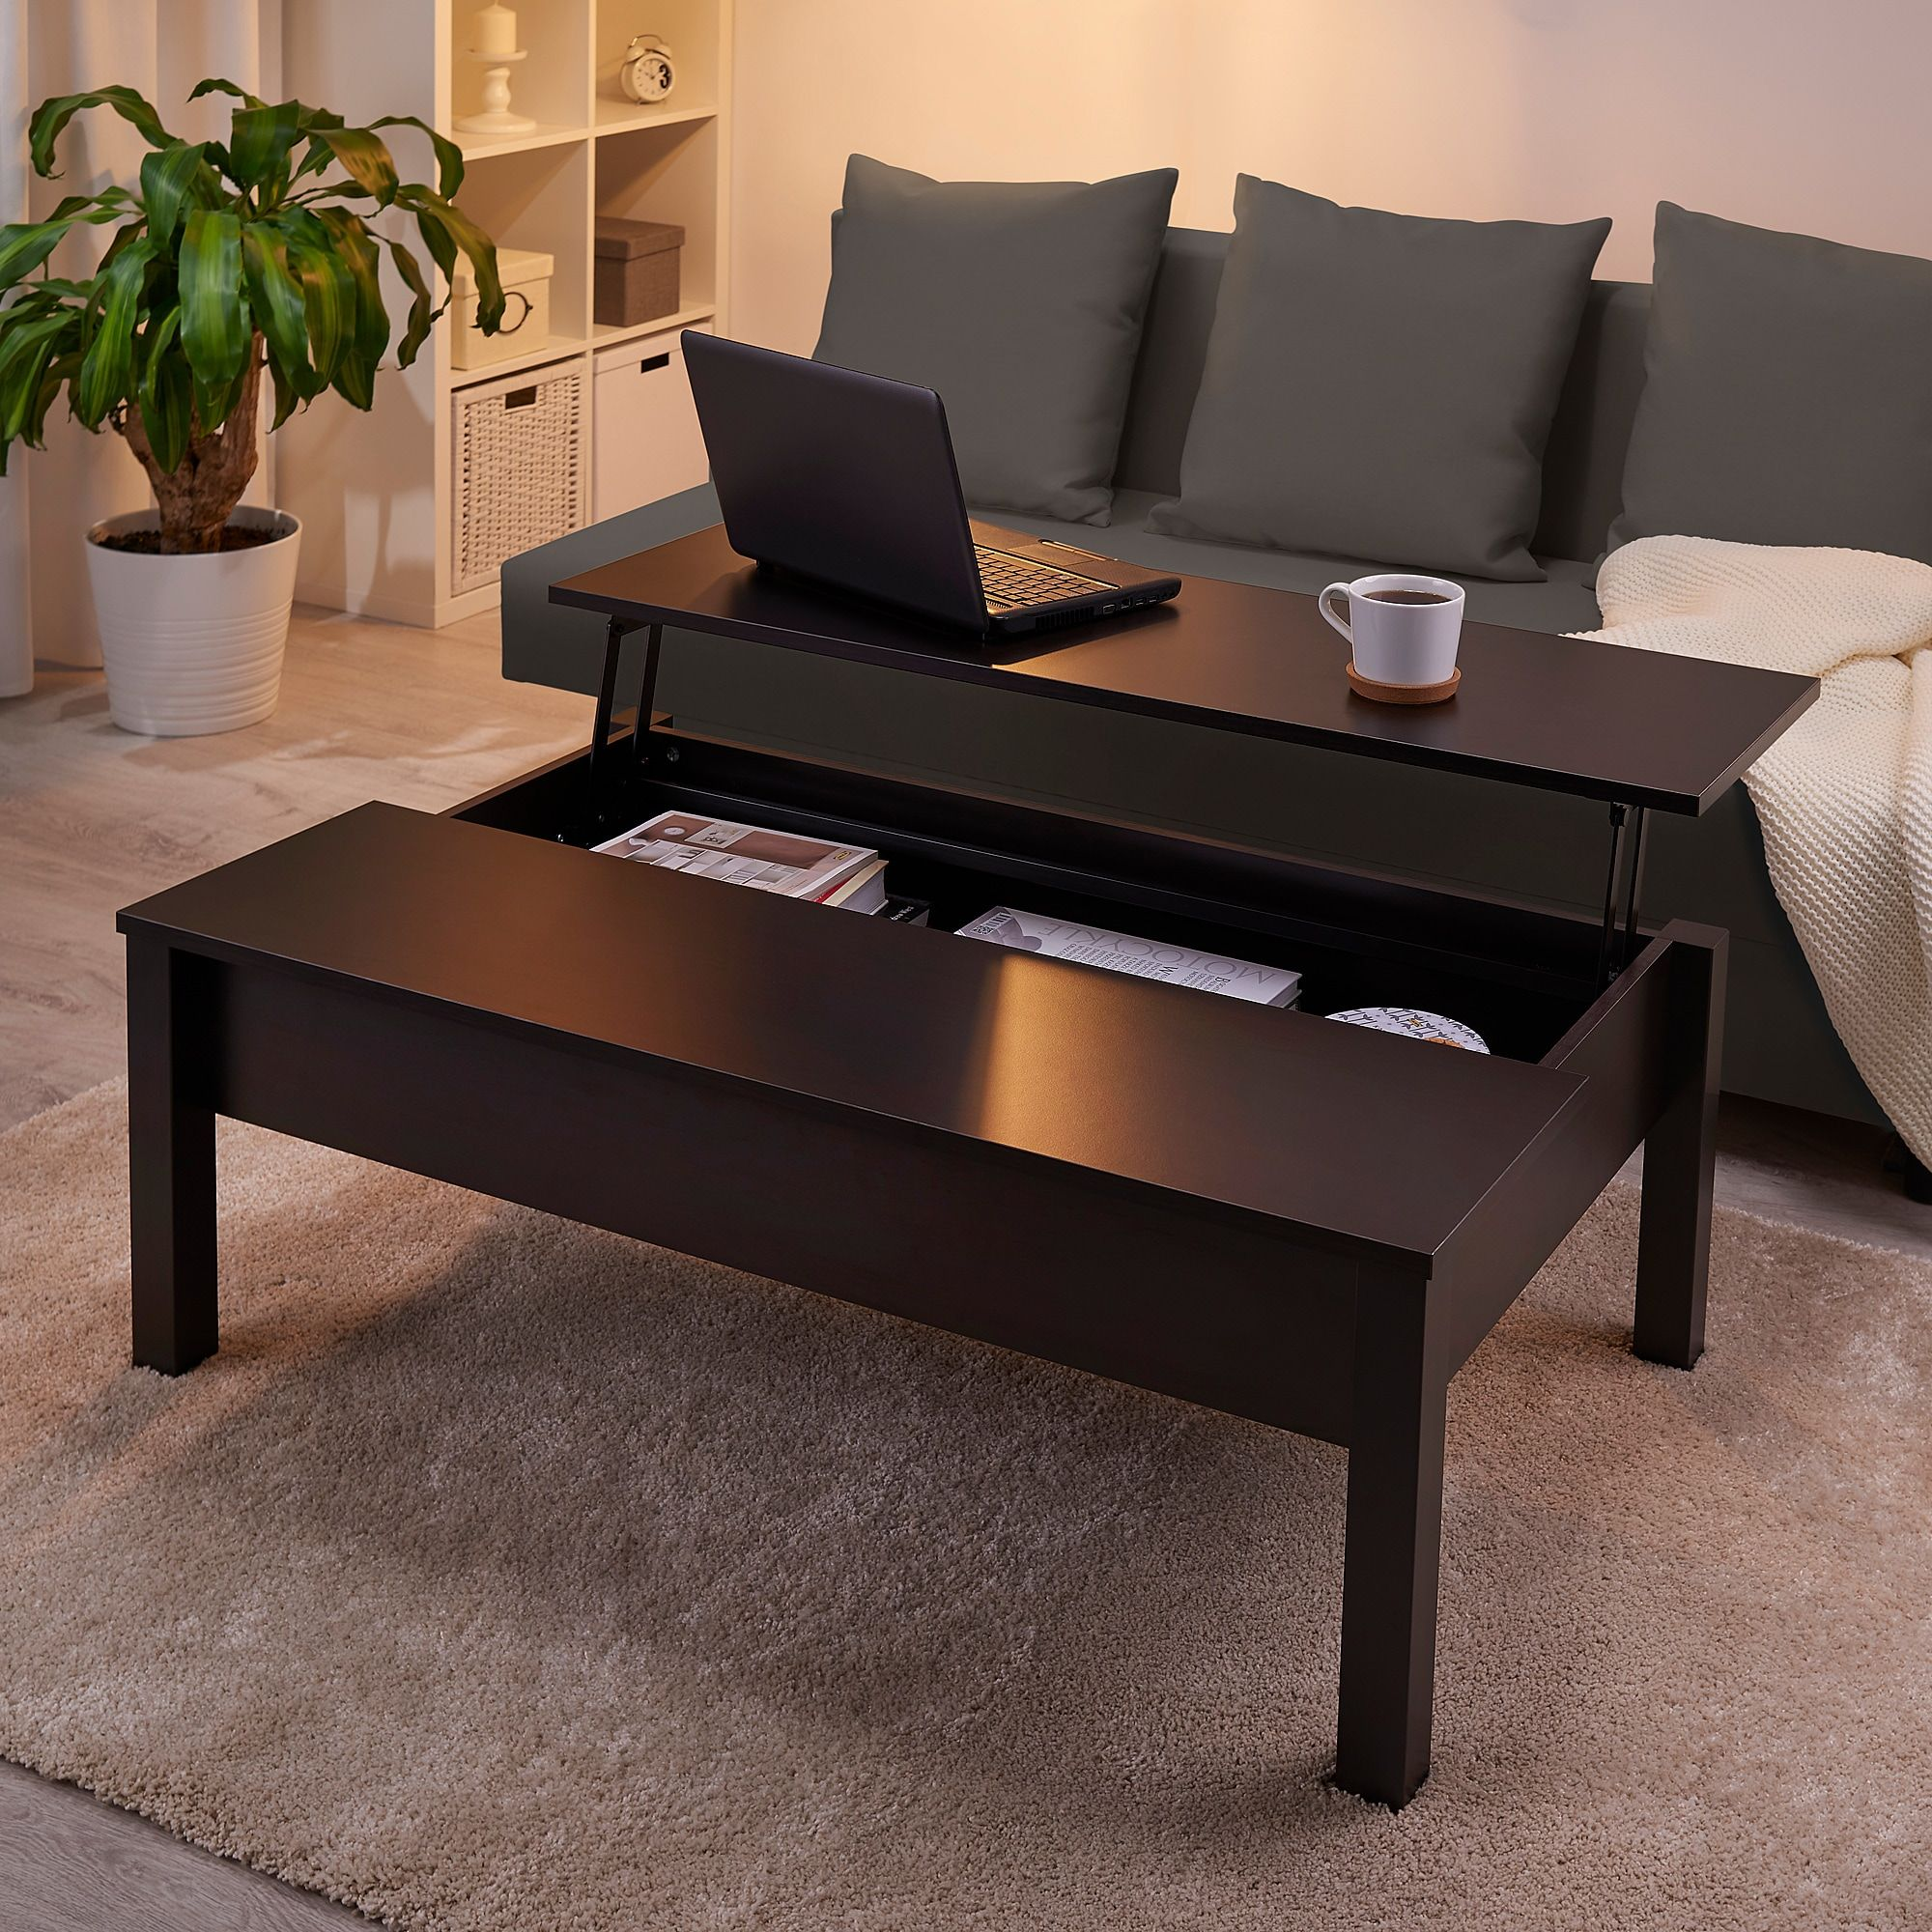 Trulstorp Coffee Table Black Brown 45 1 4x27 1 2 Ikea Coffee Table Living Room Furniture Layout Brown Coffee Table [ 2000 x 2000 Pixel ]